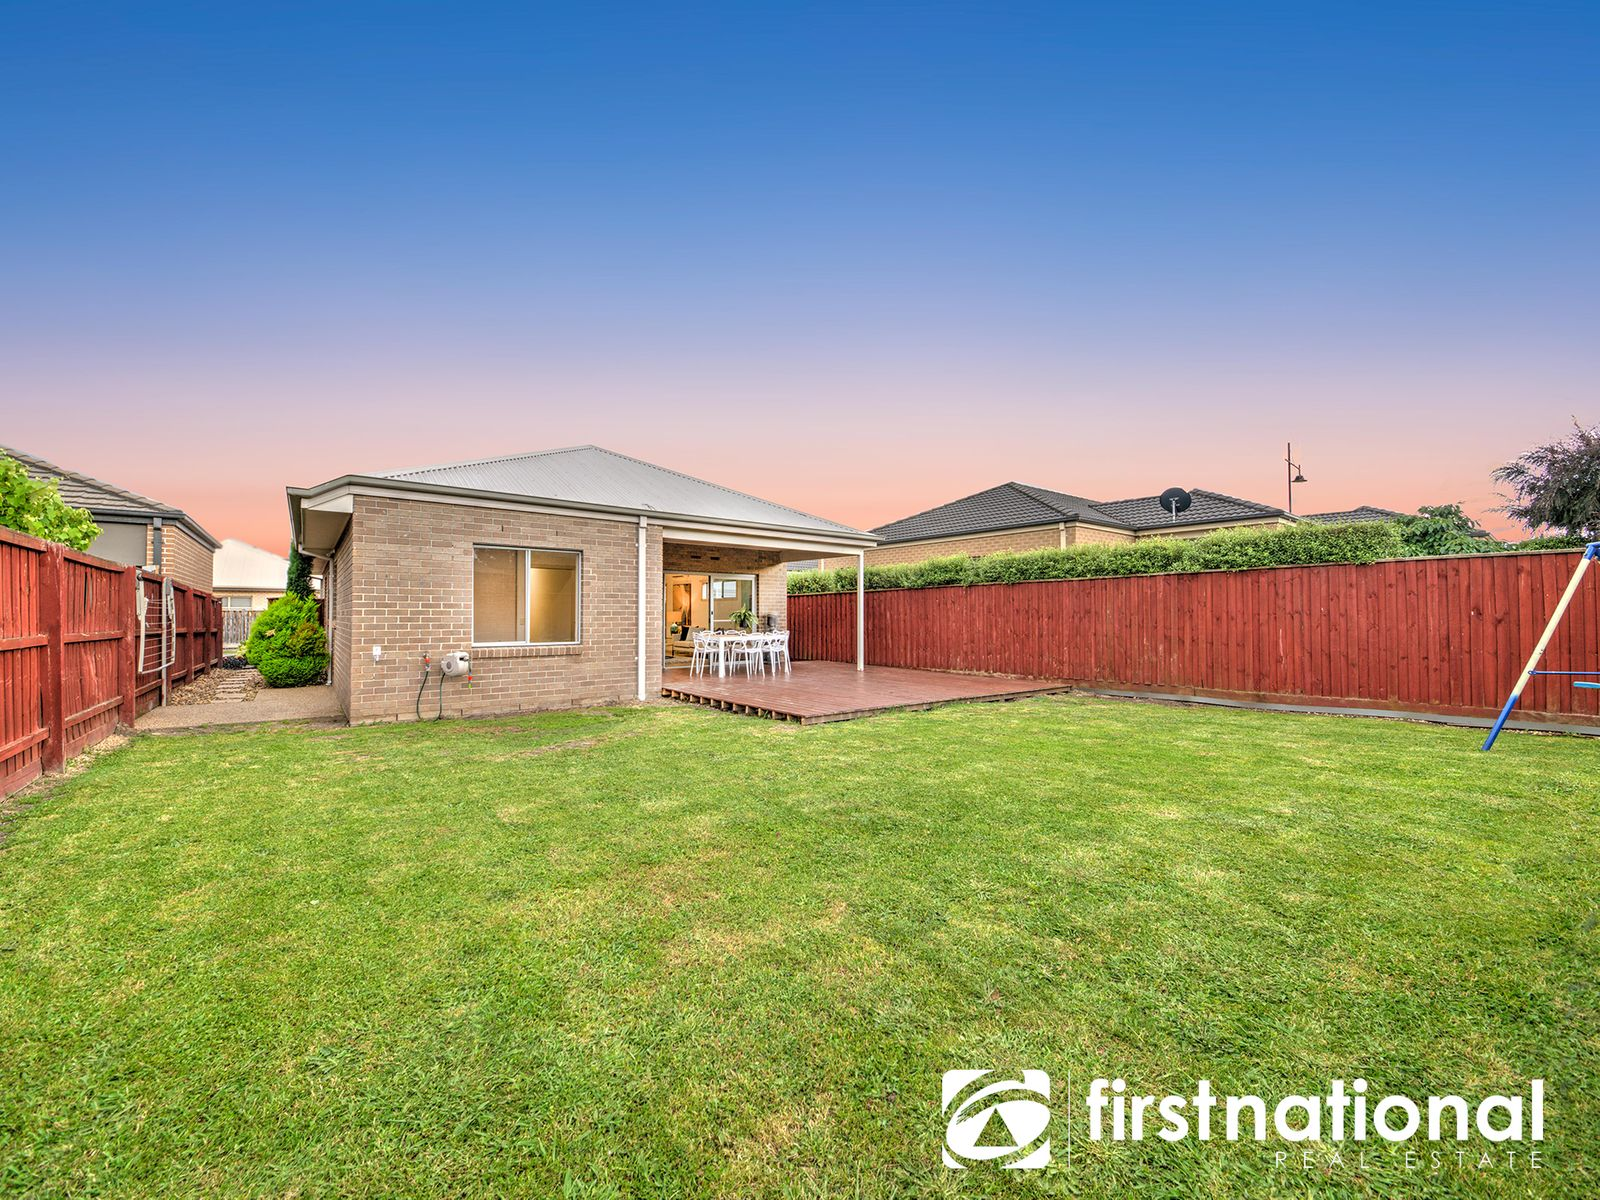 9 Silverleaf Crescent, Officer, VIC 3809